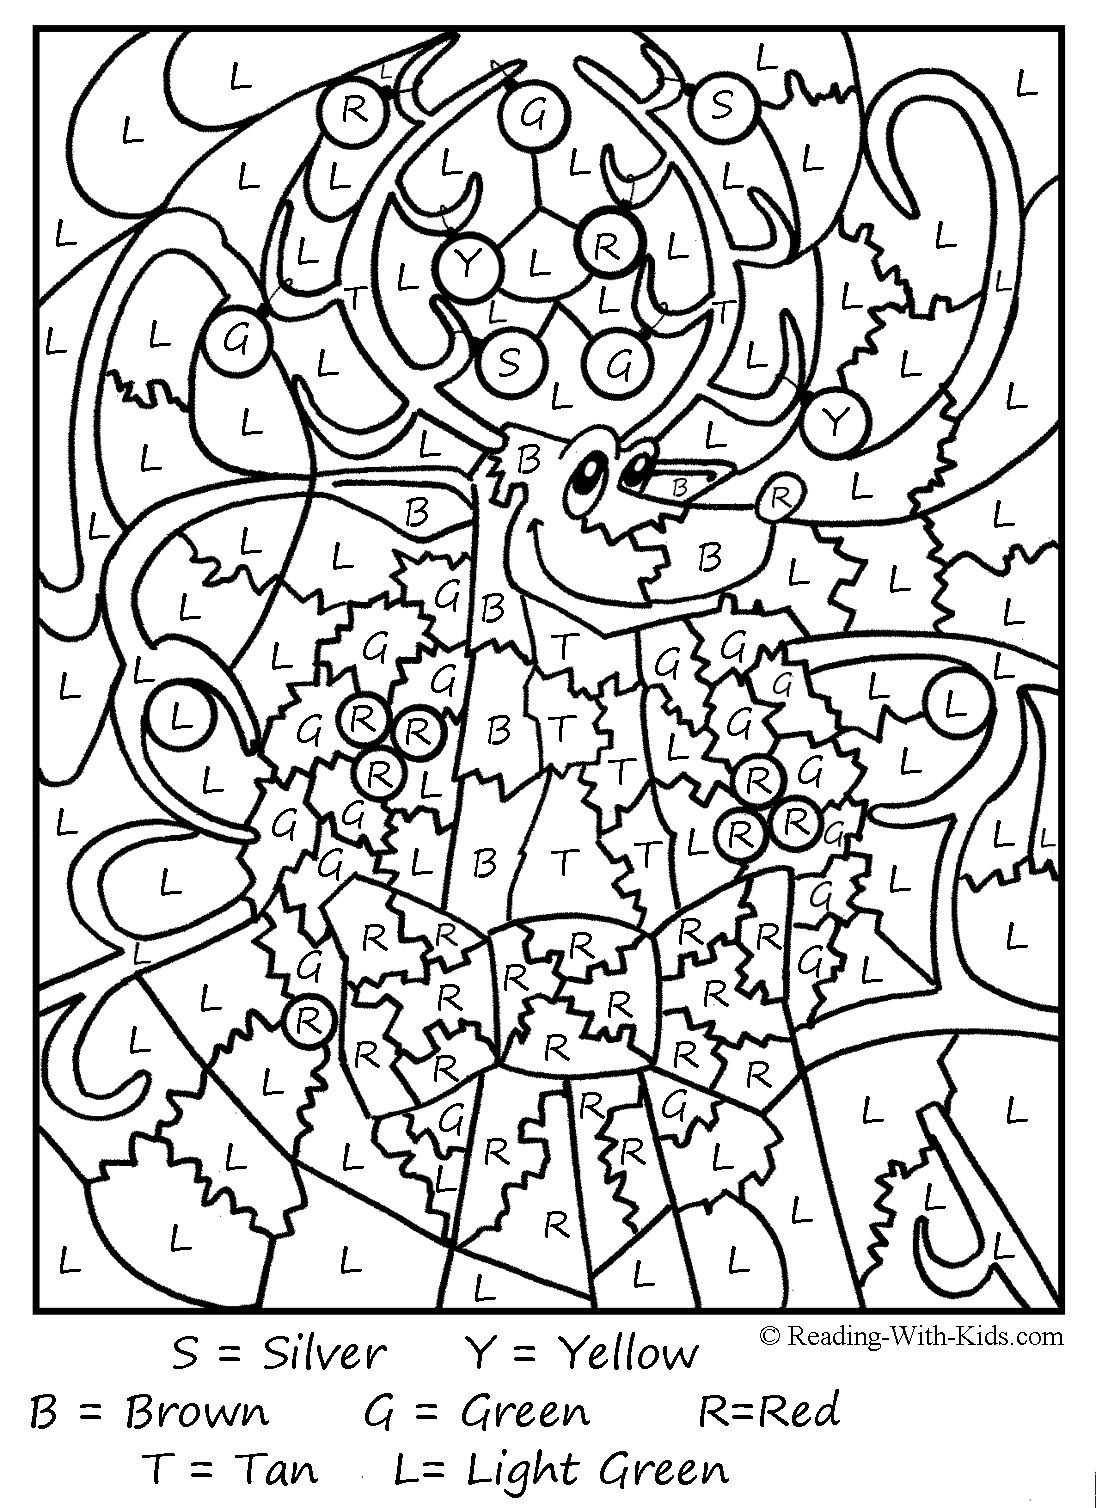 Color By Letter And Number Coloring Pages Are Fun